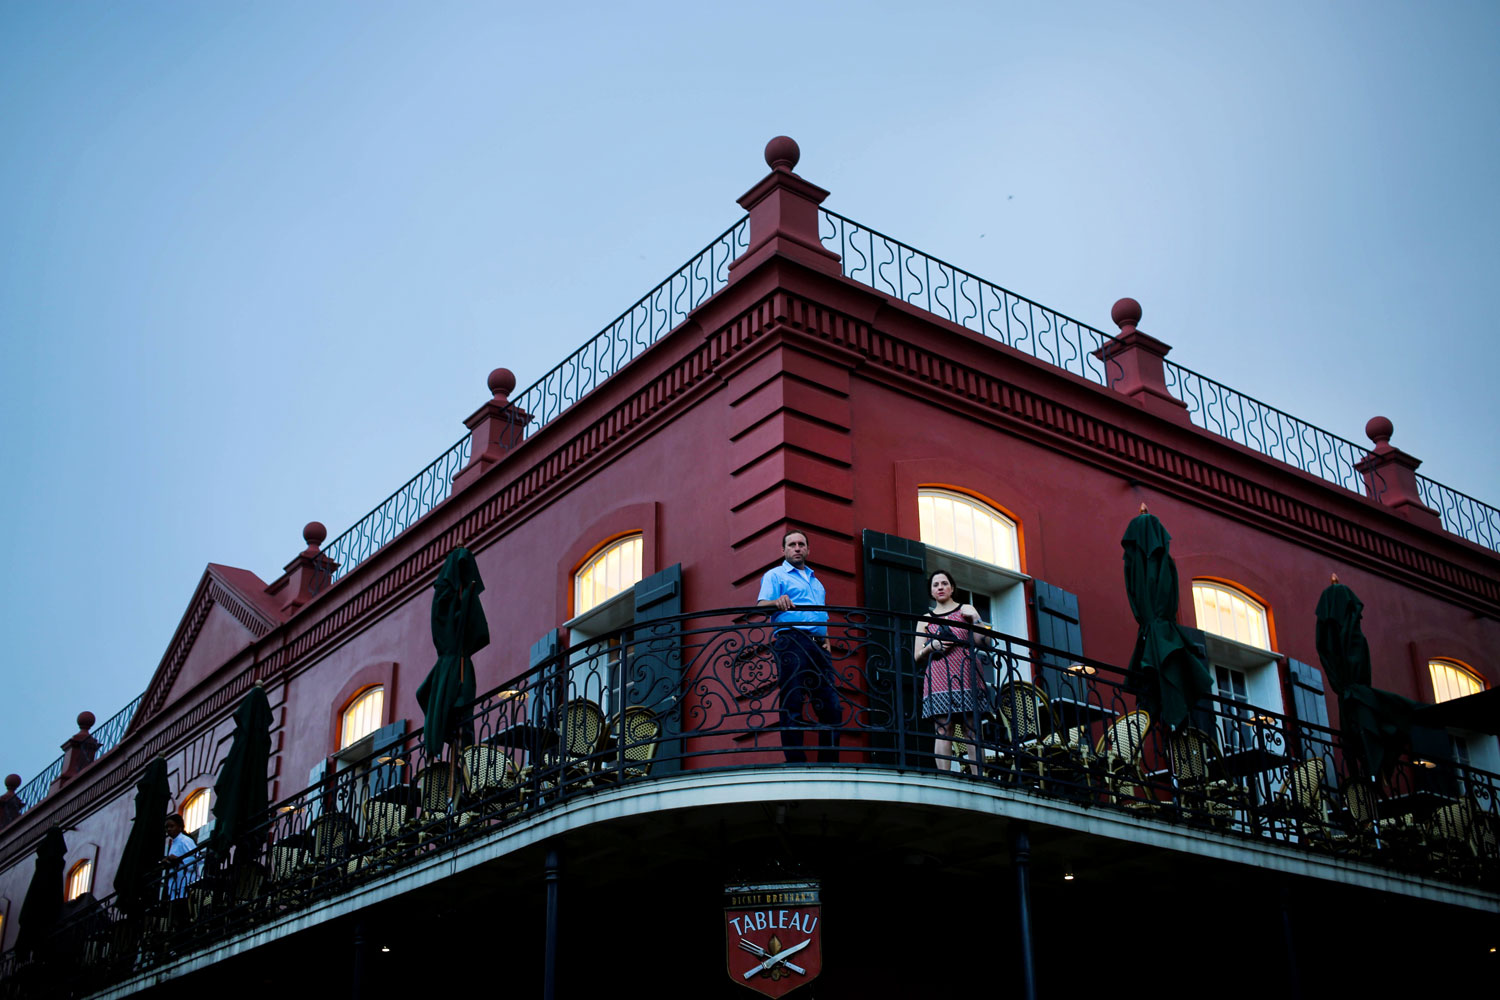 New Orleans / for the love of nike